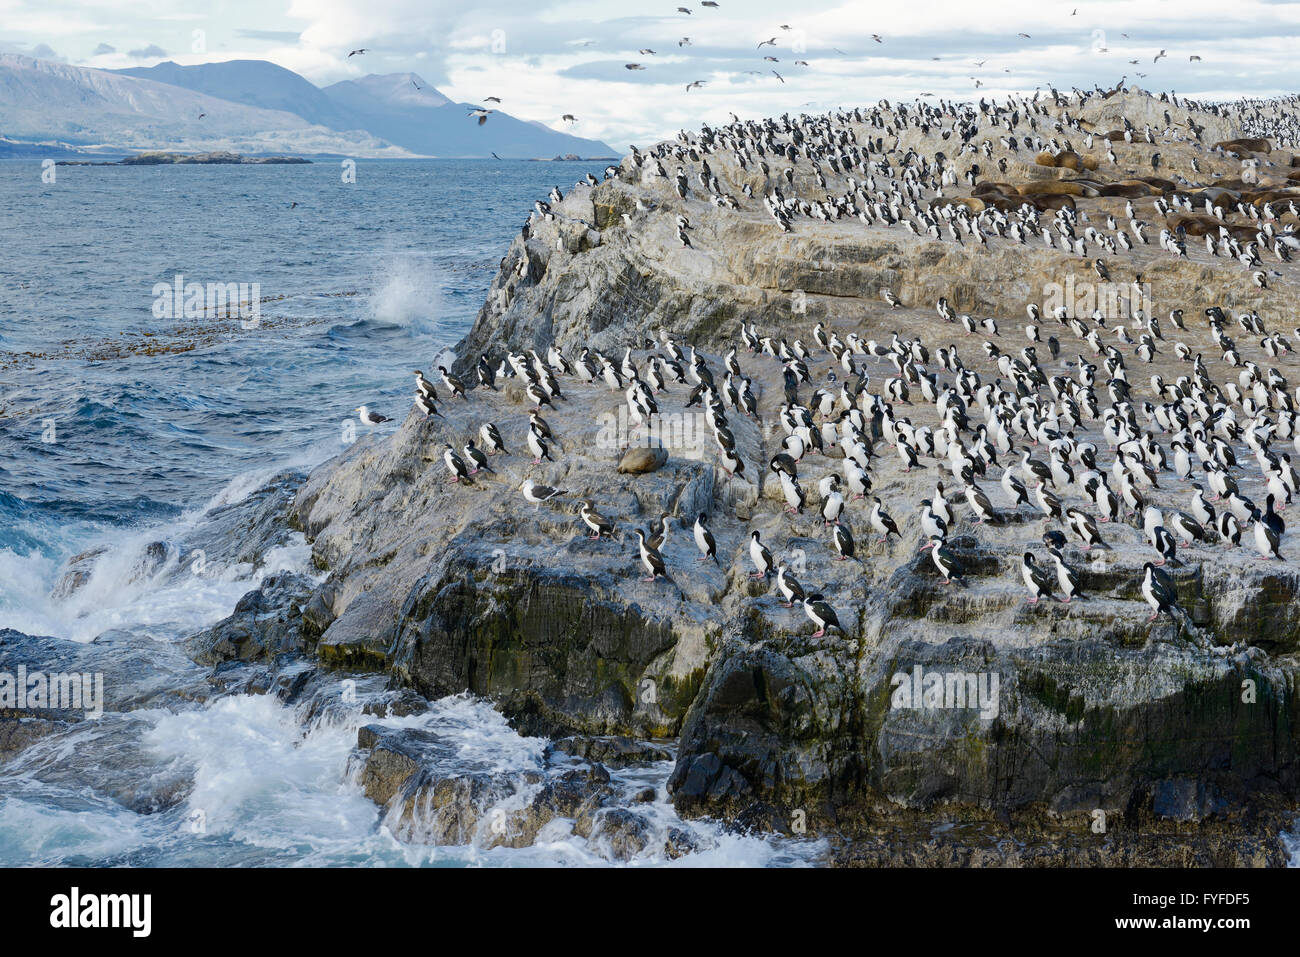 Colony of King Cormorants and Sea Lions, Beagle Channel, Tierra Del Fuego, Argentina - Stock Image